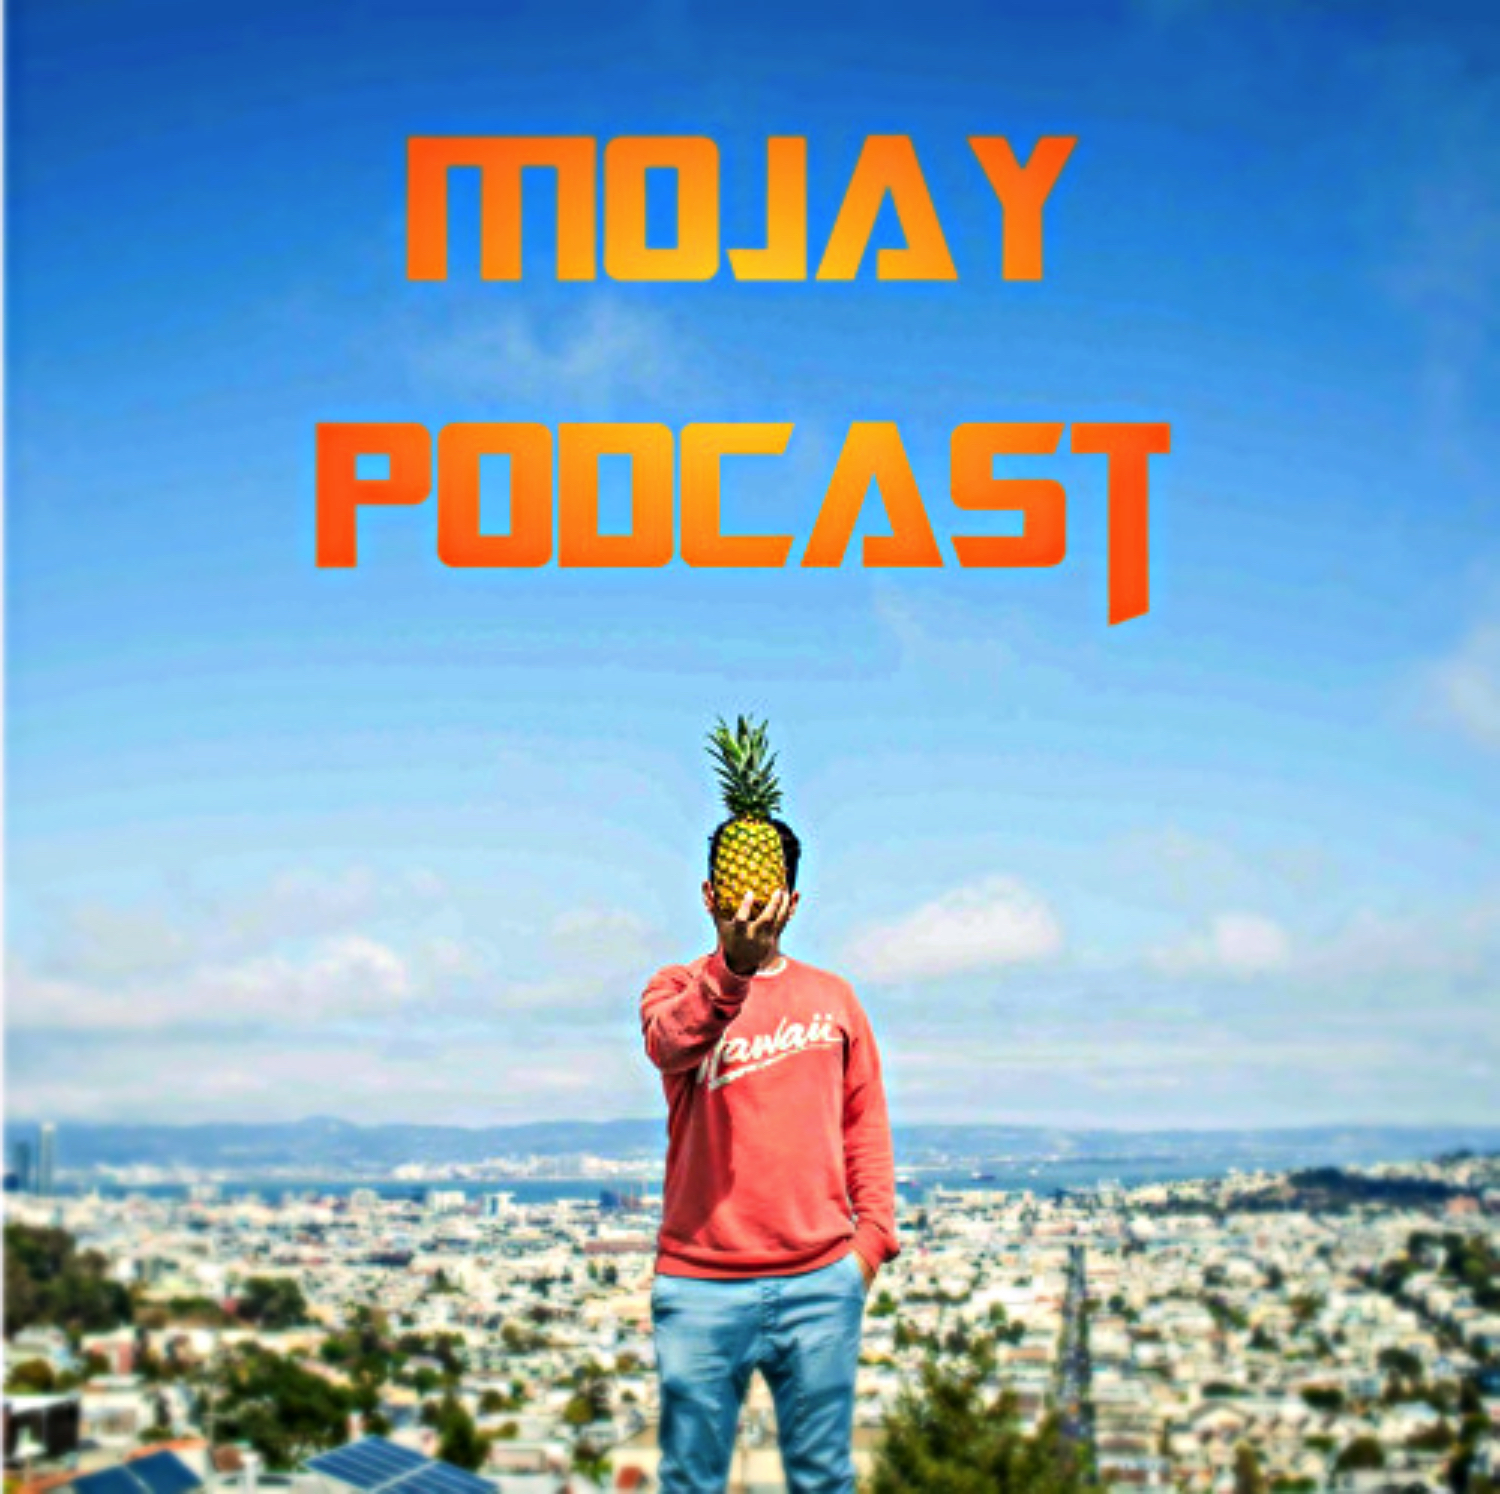 mojay podcast